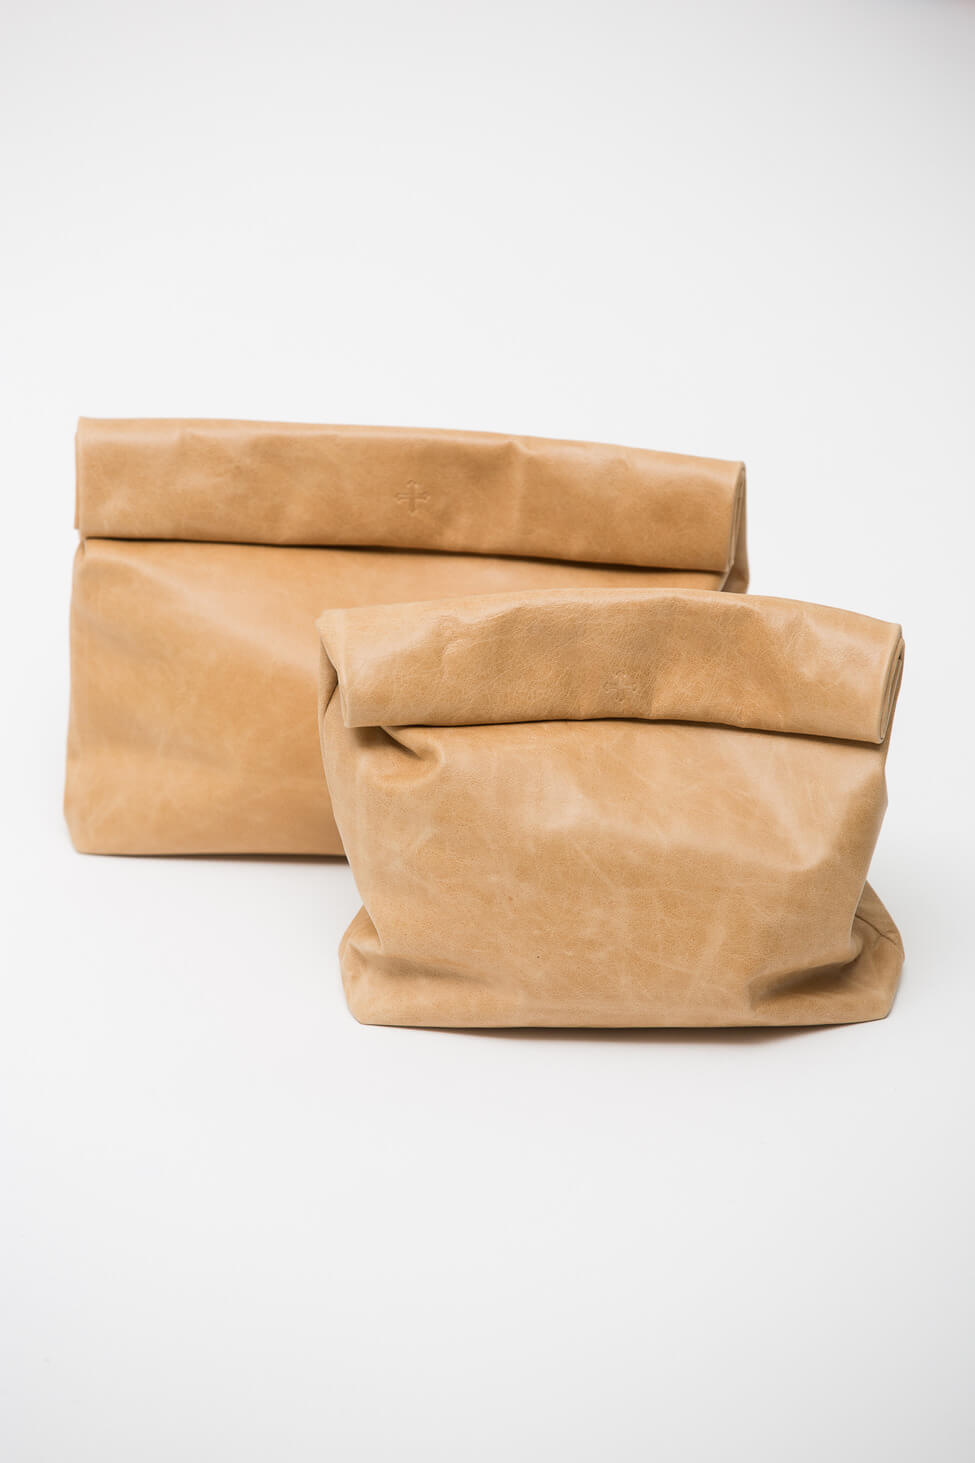 #10 Luxe Leather Lunch Bag | Sophisticated Lunch Carriers | Image Source: shopacrimony.com